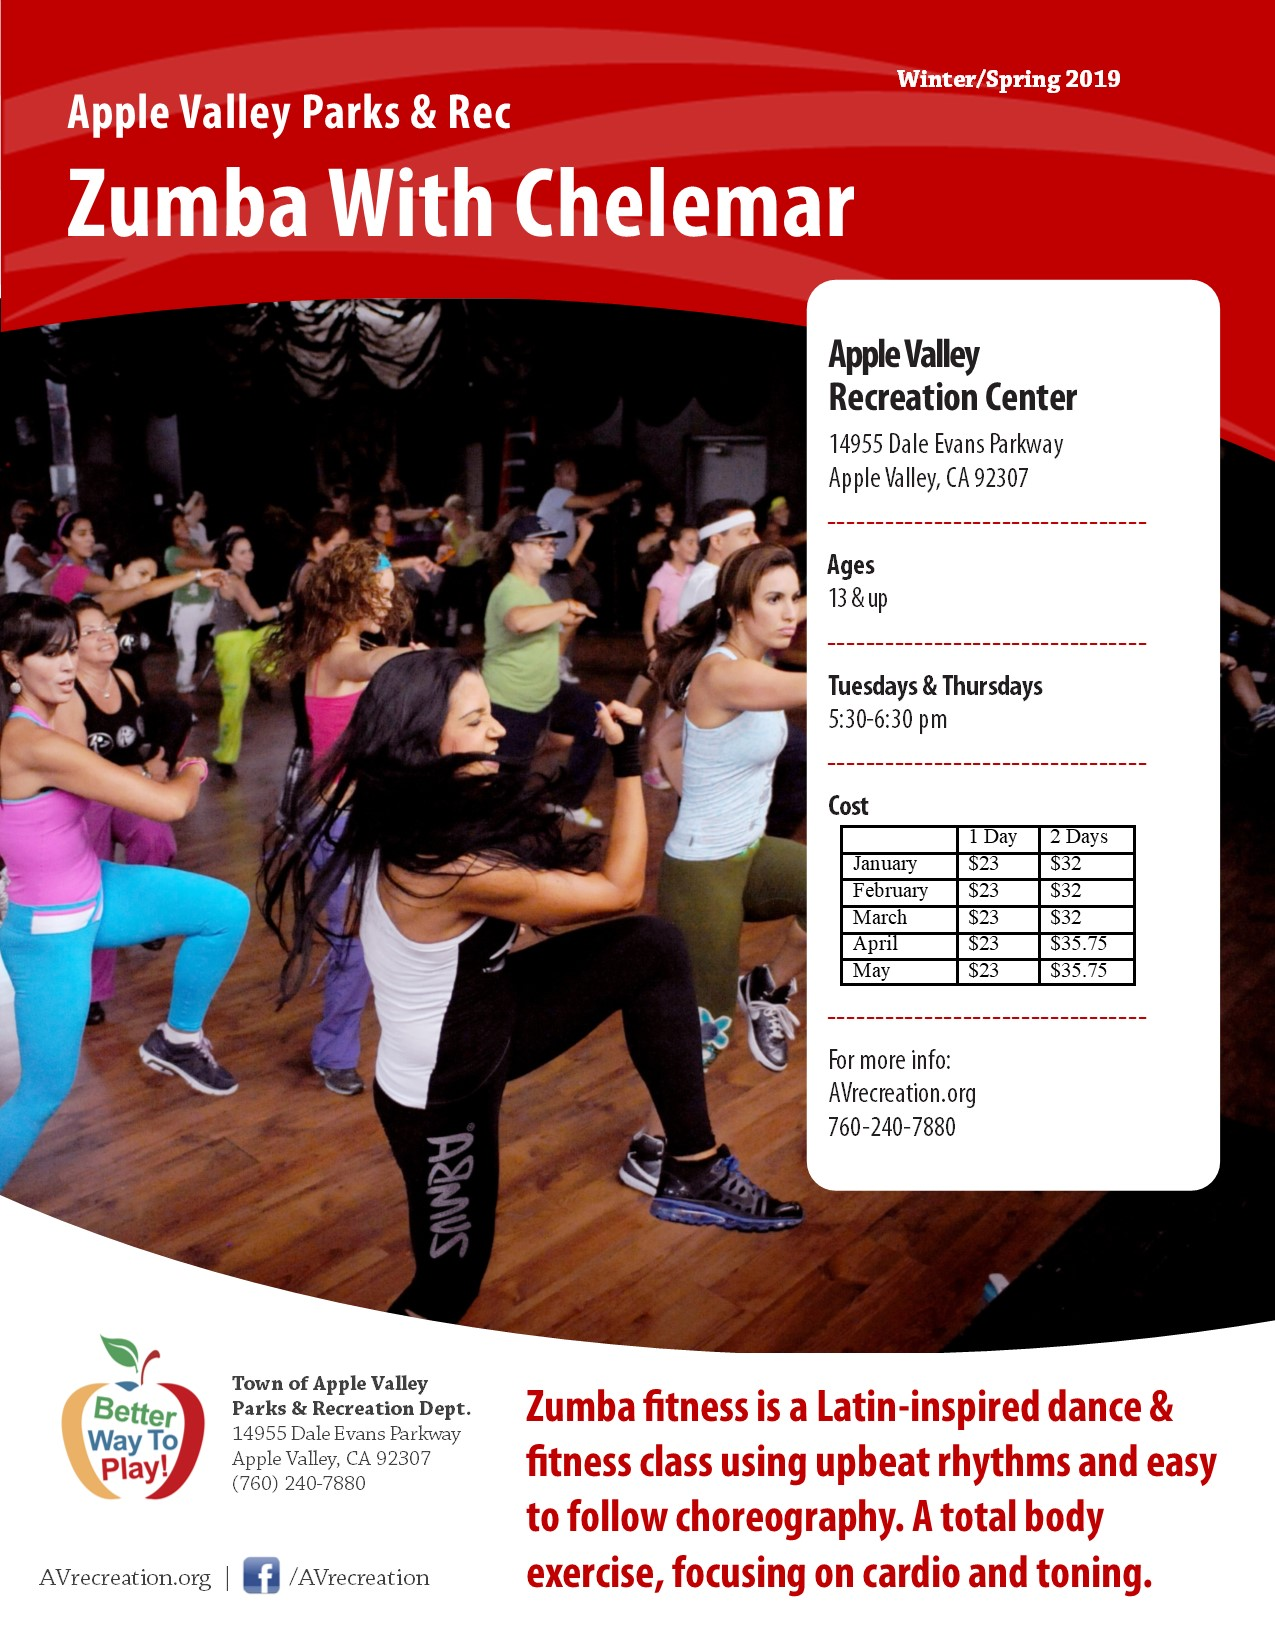 Zumba with Chelemar